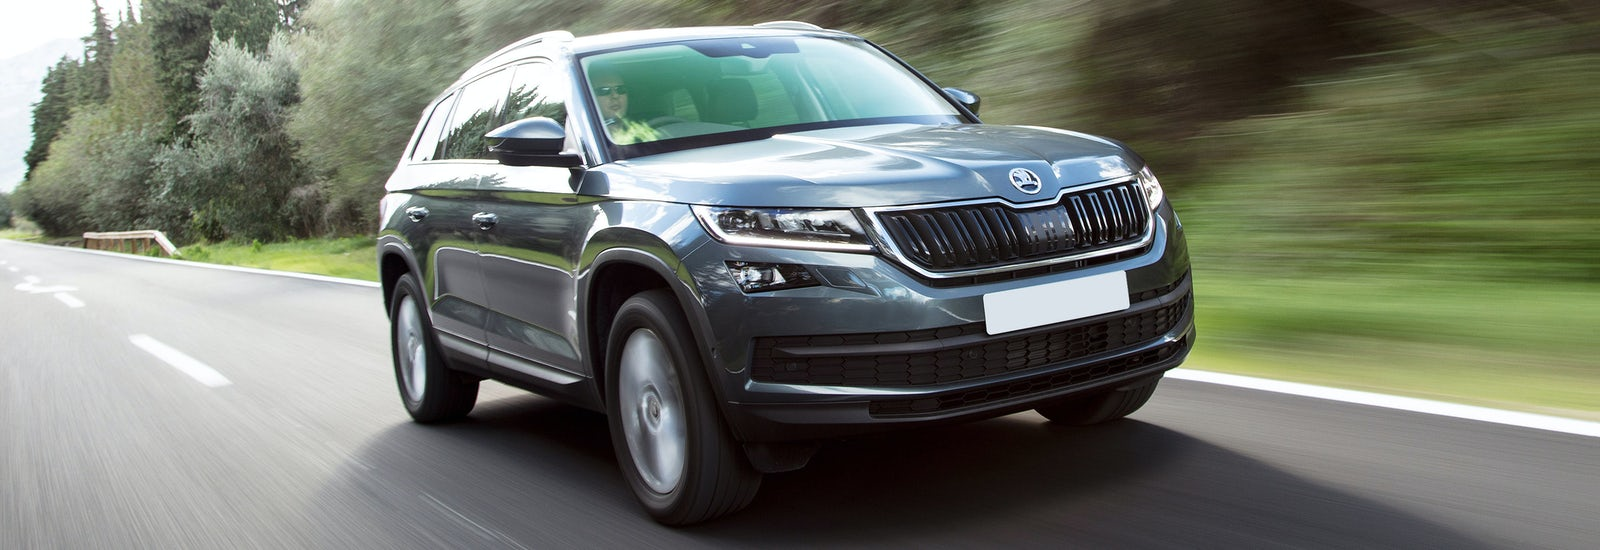 The best seven seater SUVs on sale 2017-18 | carwow